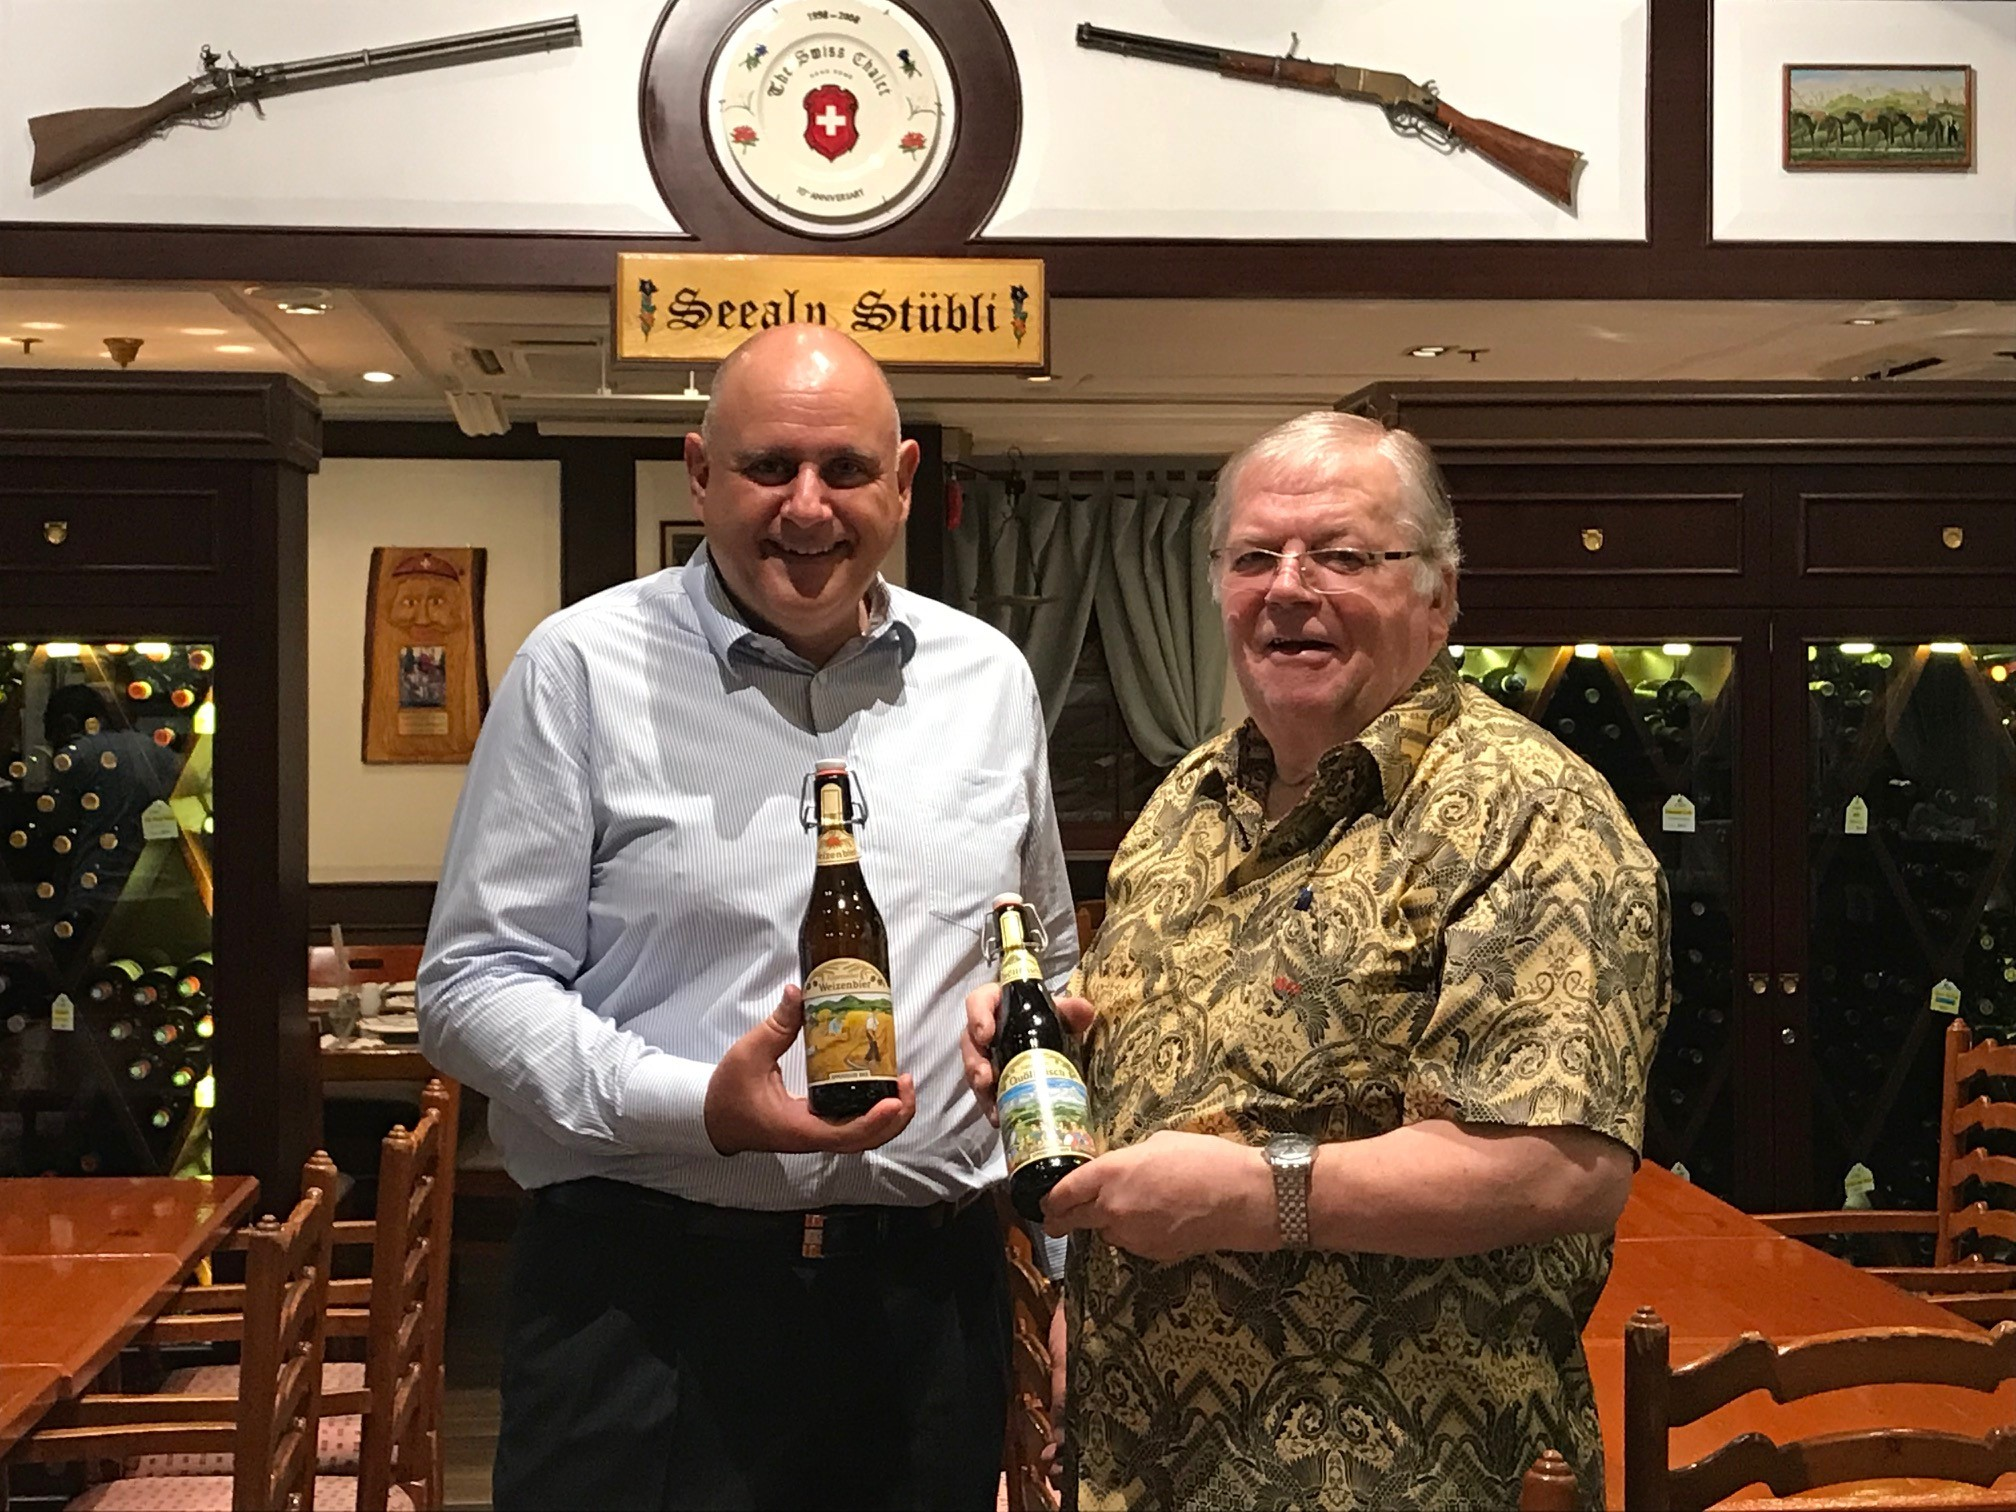 Enjoy a Swiss Quöllfrisch Beer at The Swiss Chalet Restaurant in TST